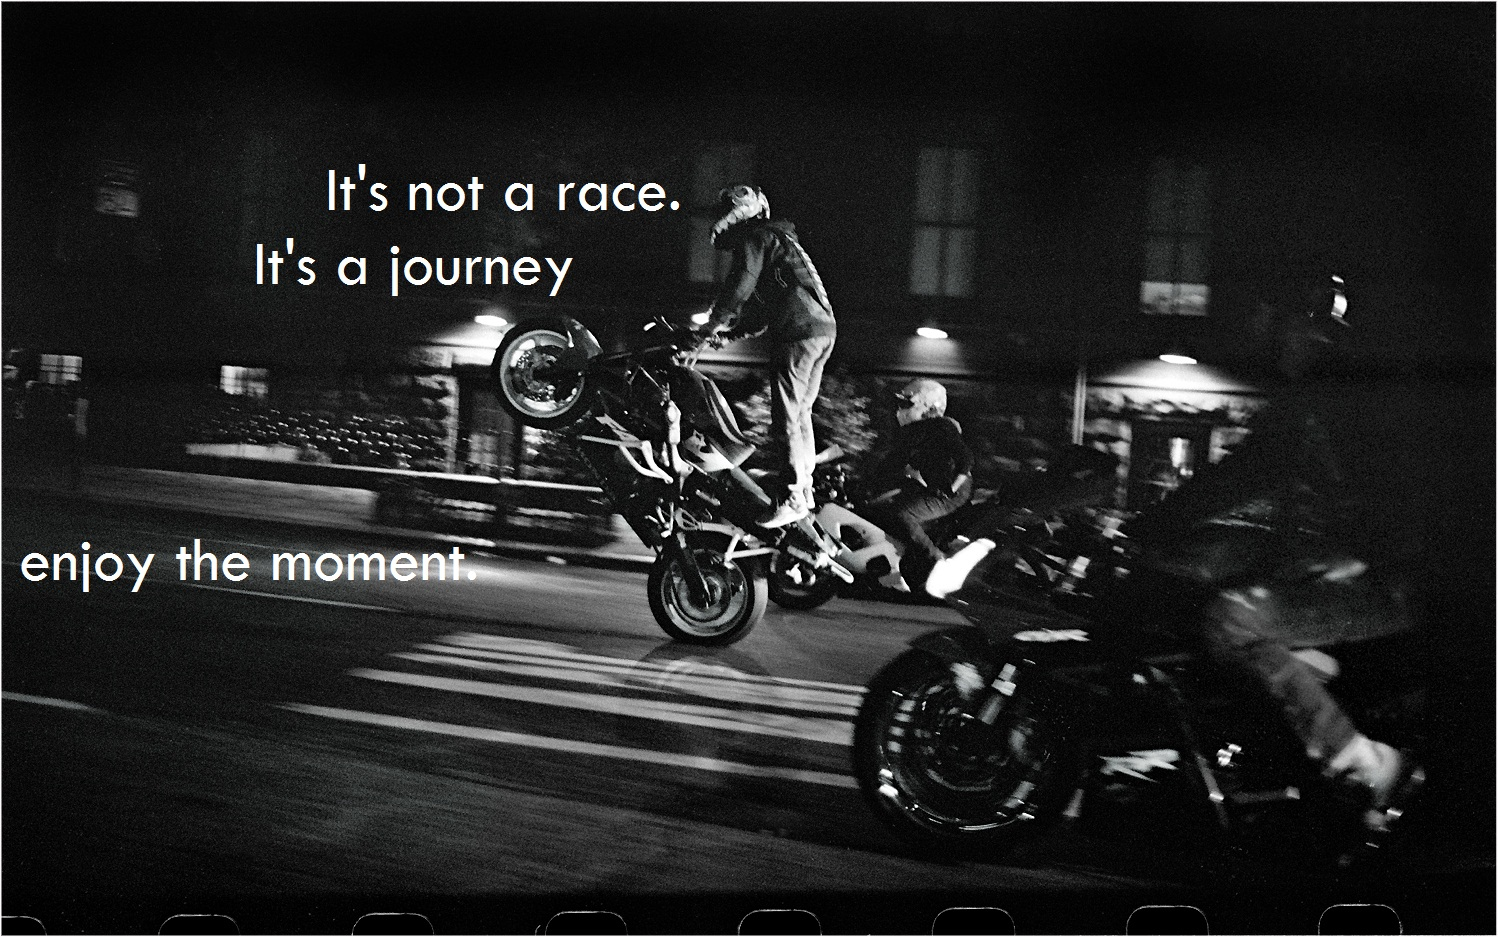 bike, drive, moment, quotes, race